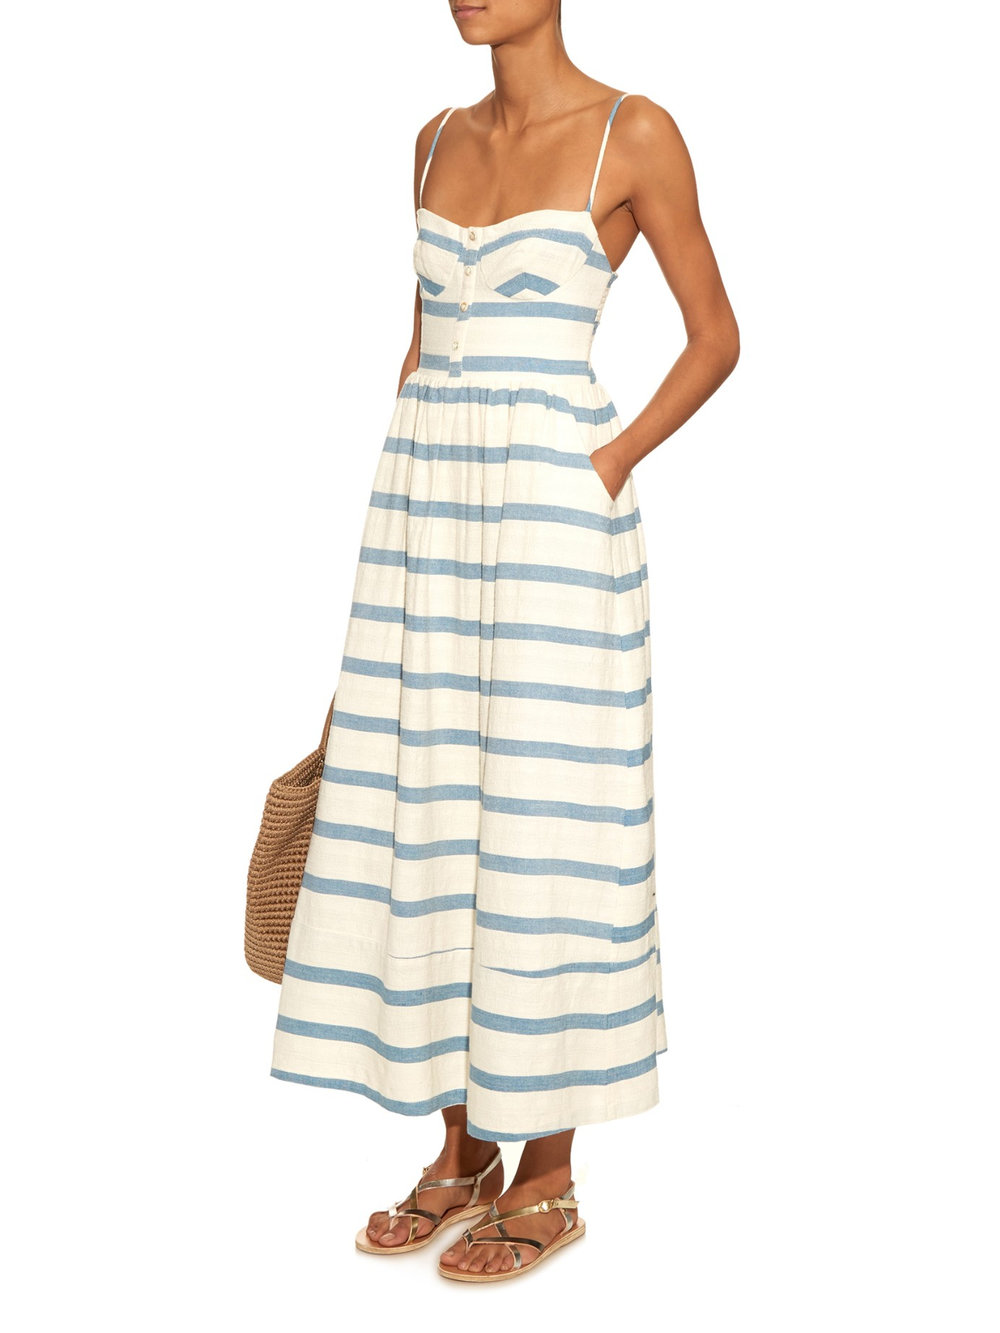 Mara Hoffman Bustier Striped Sundress